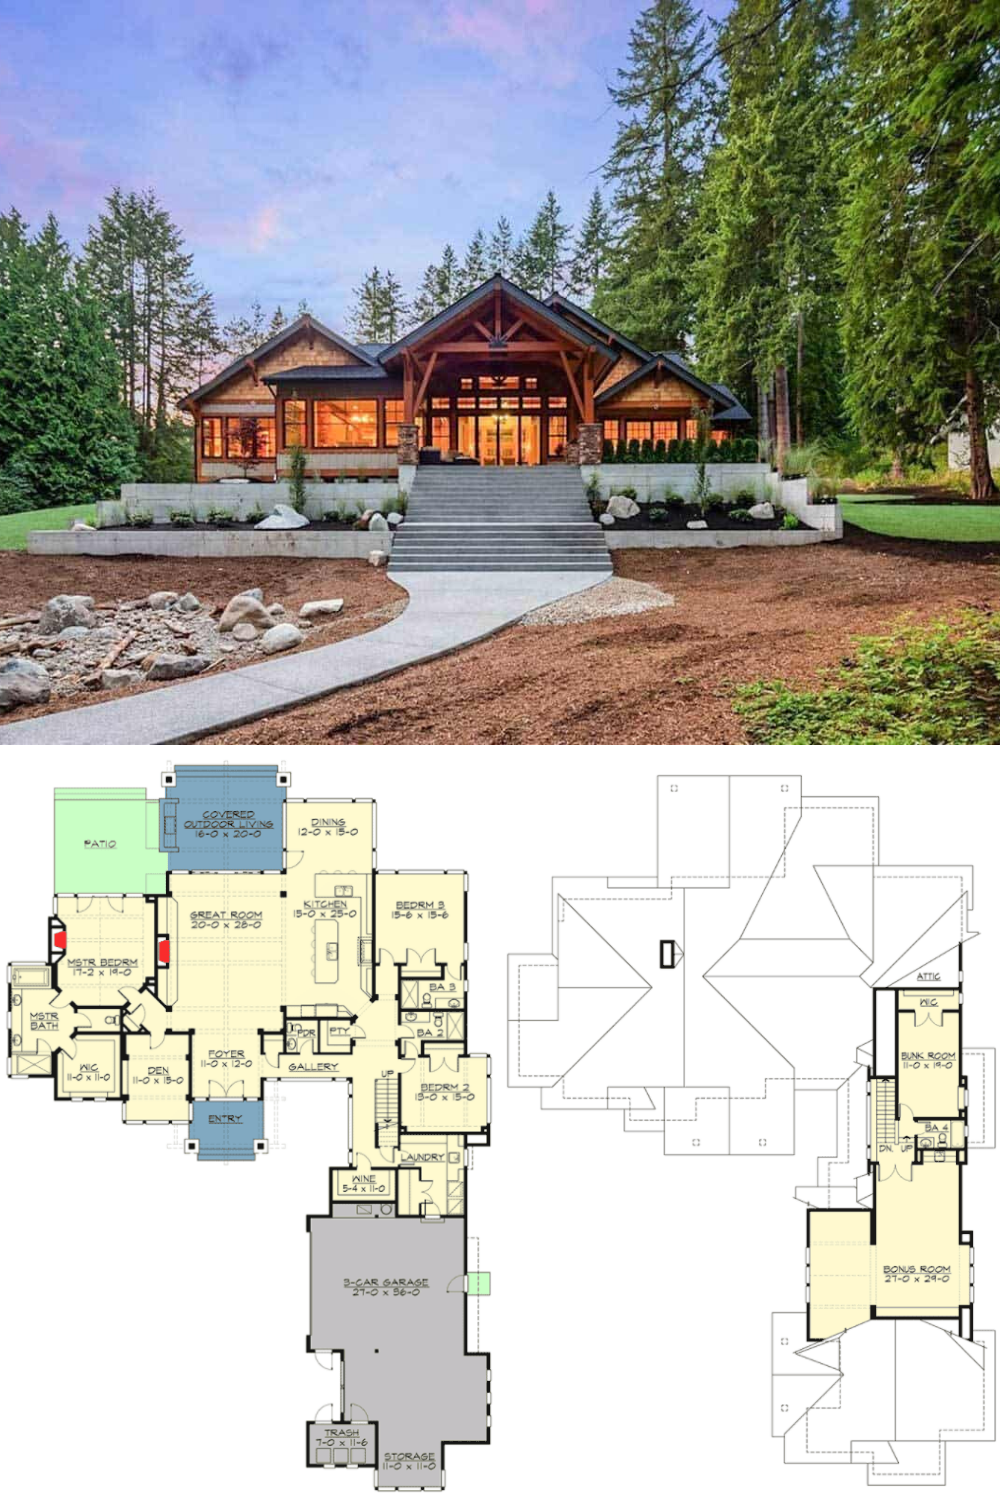 4 Bdrm Open Concept Mountain Style Home A Real Beauty In 2020 Home Exterior Makeover Mountain House Plans Exterior Makeover